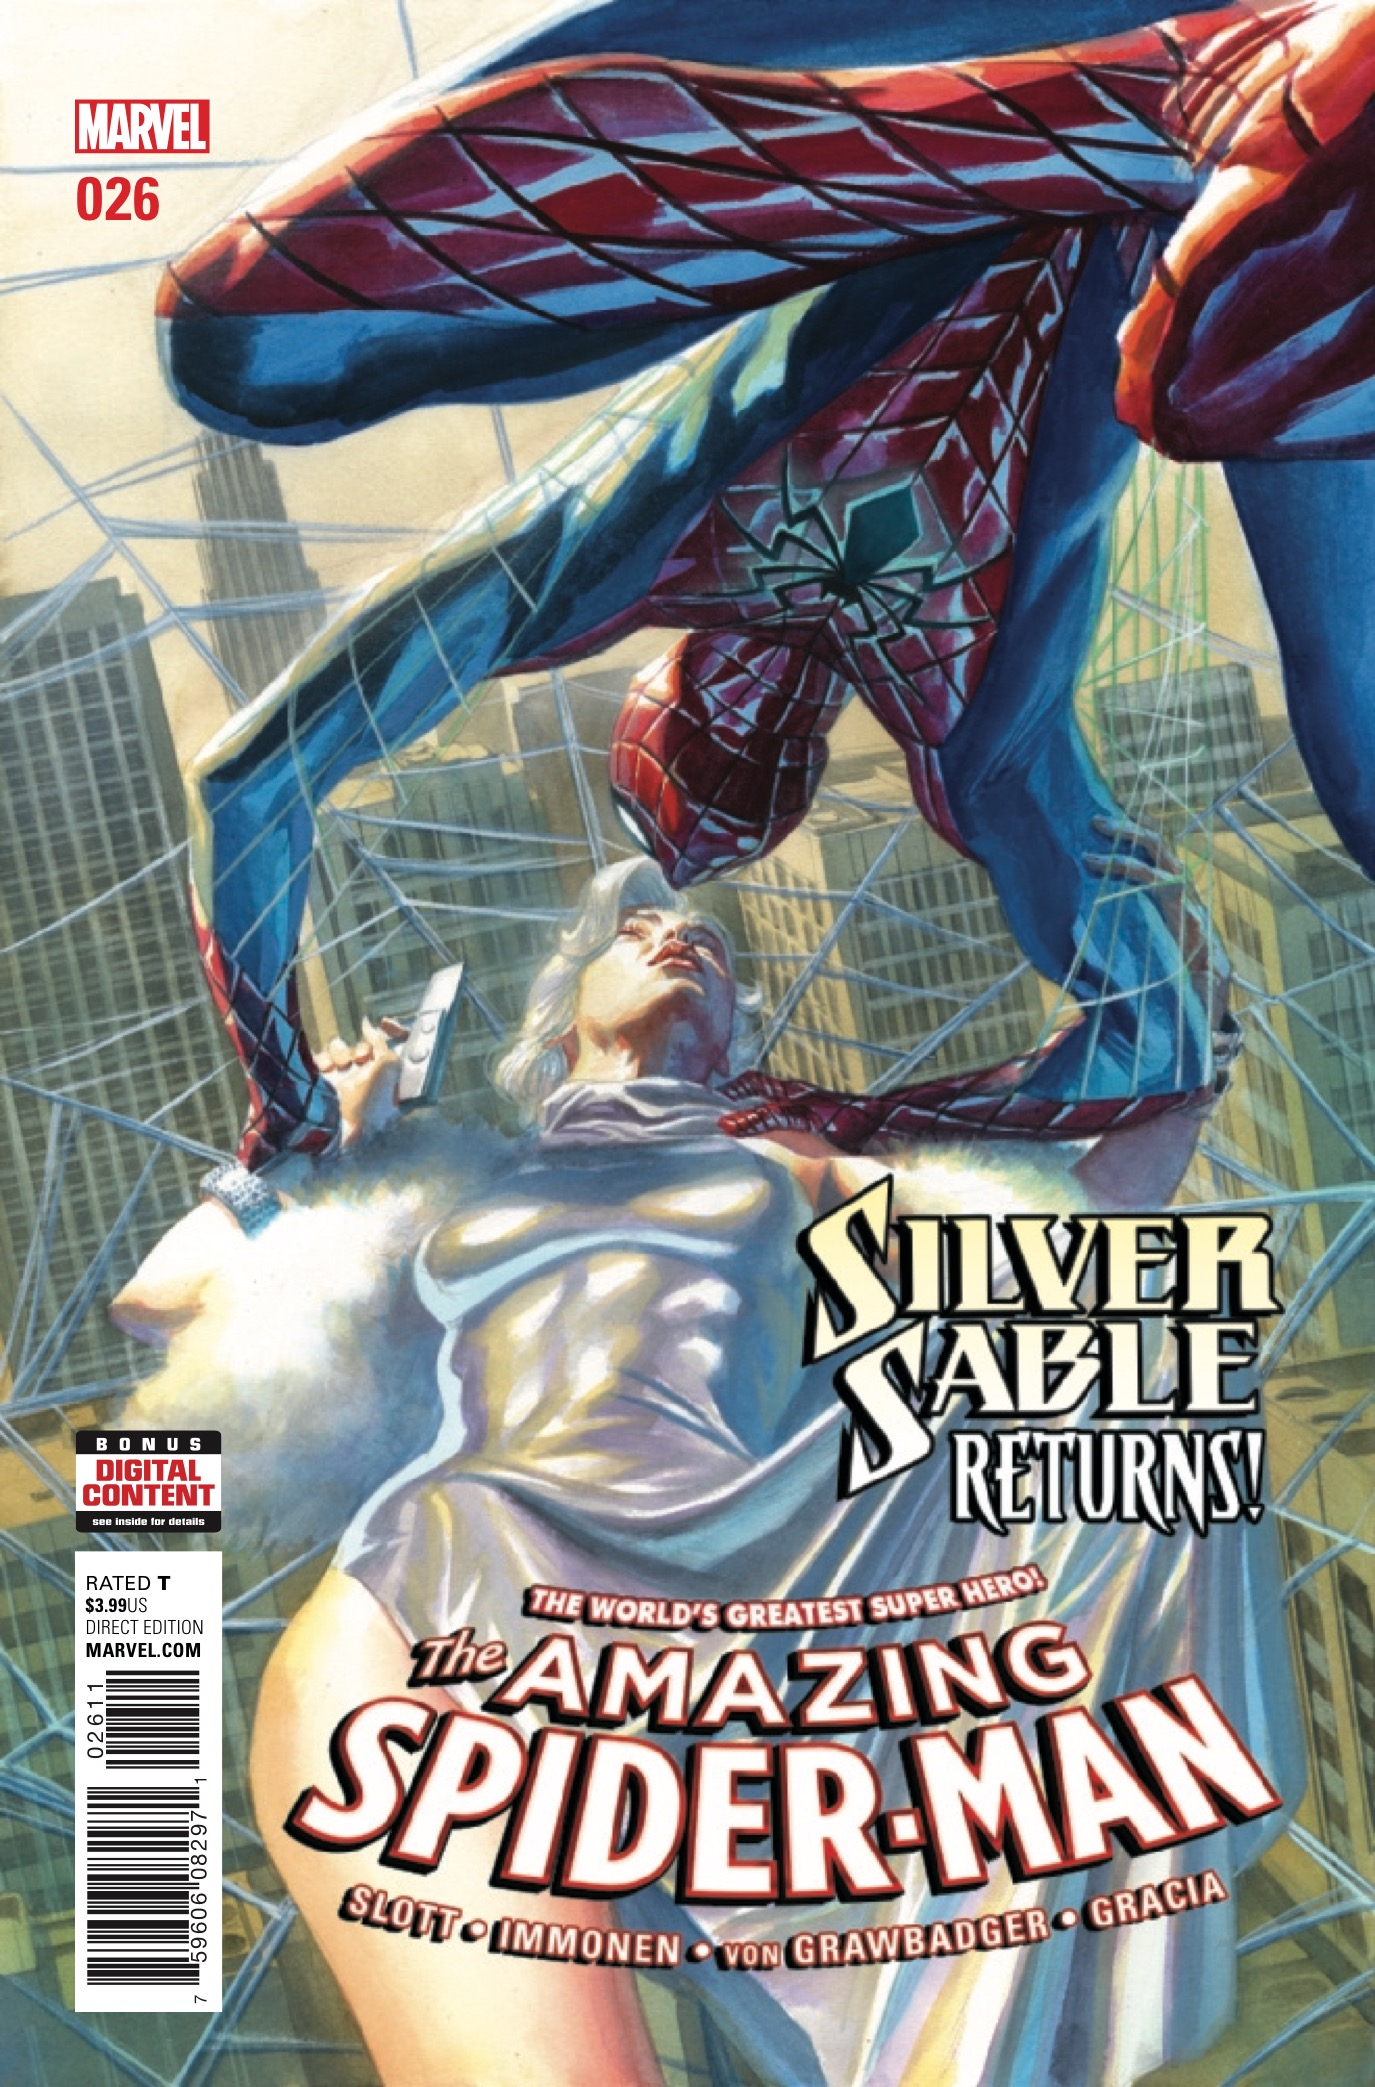 Amazing Spider-Man #26 Review